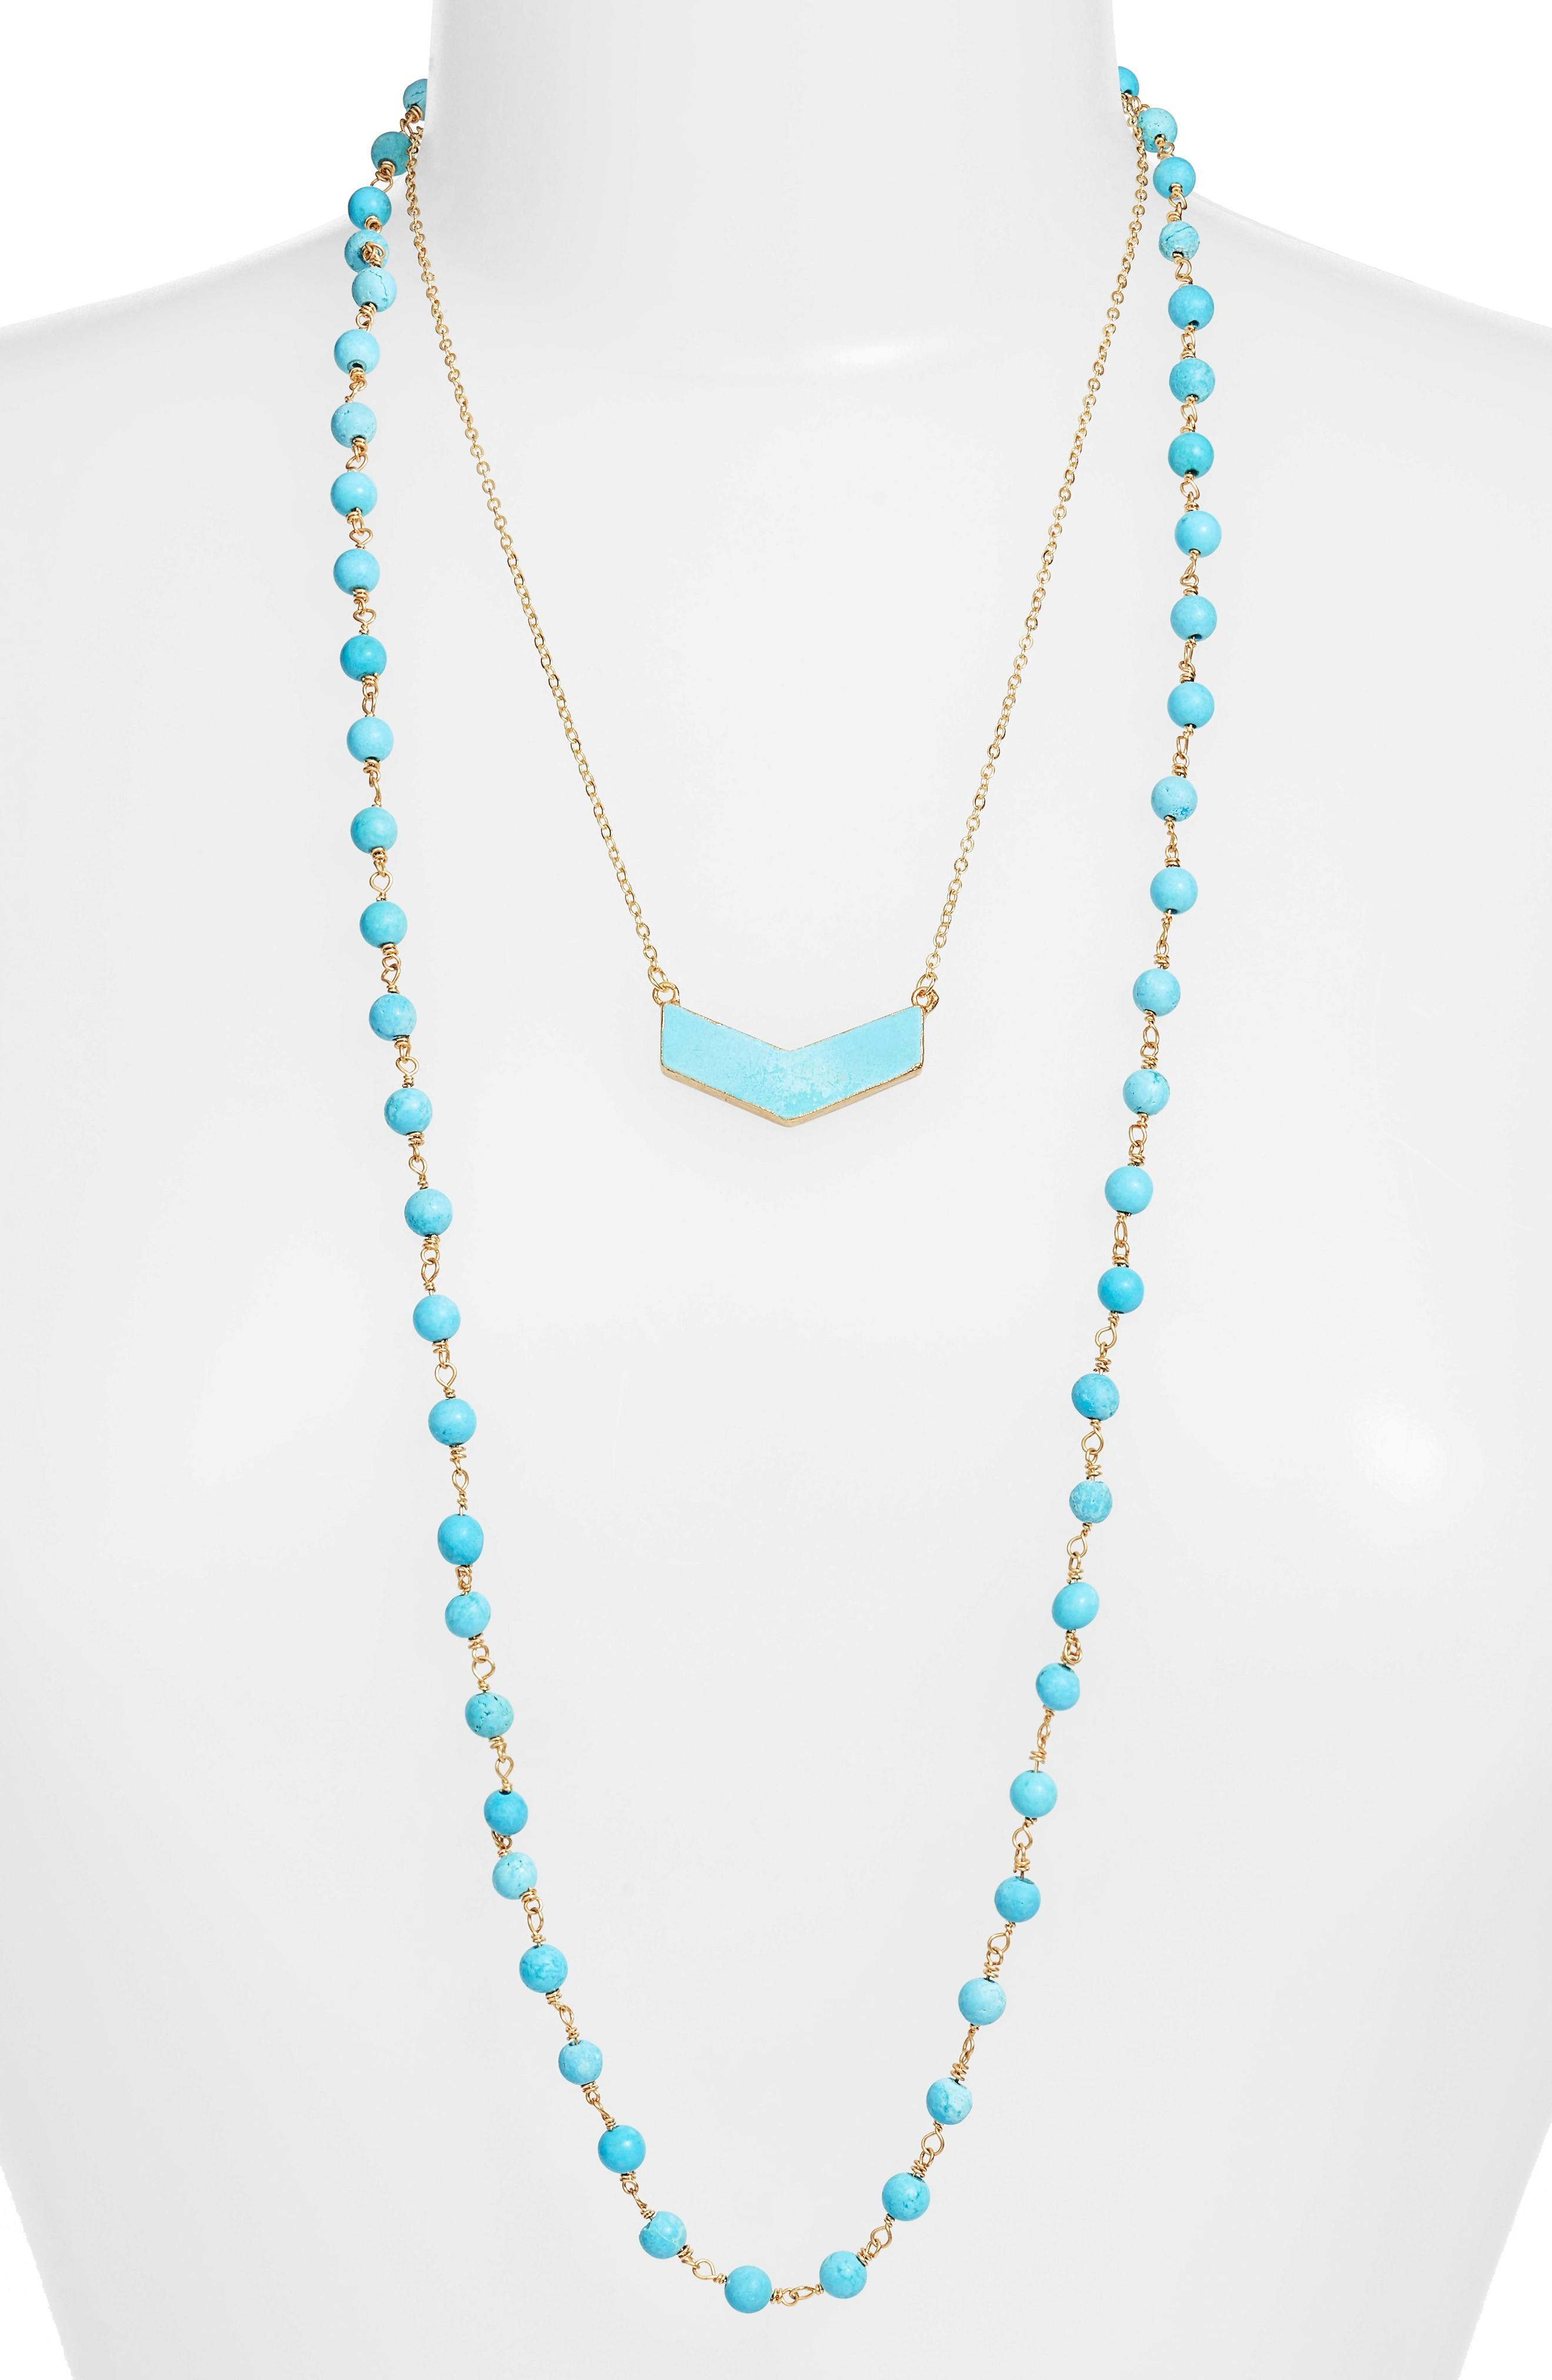 Elise M. Julia Double Strand Necklace In Turquoise/ Turquoise